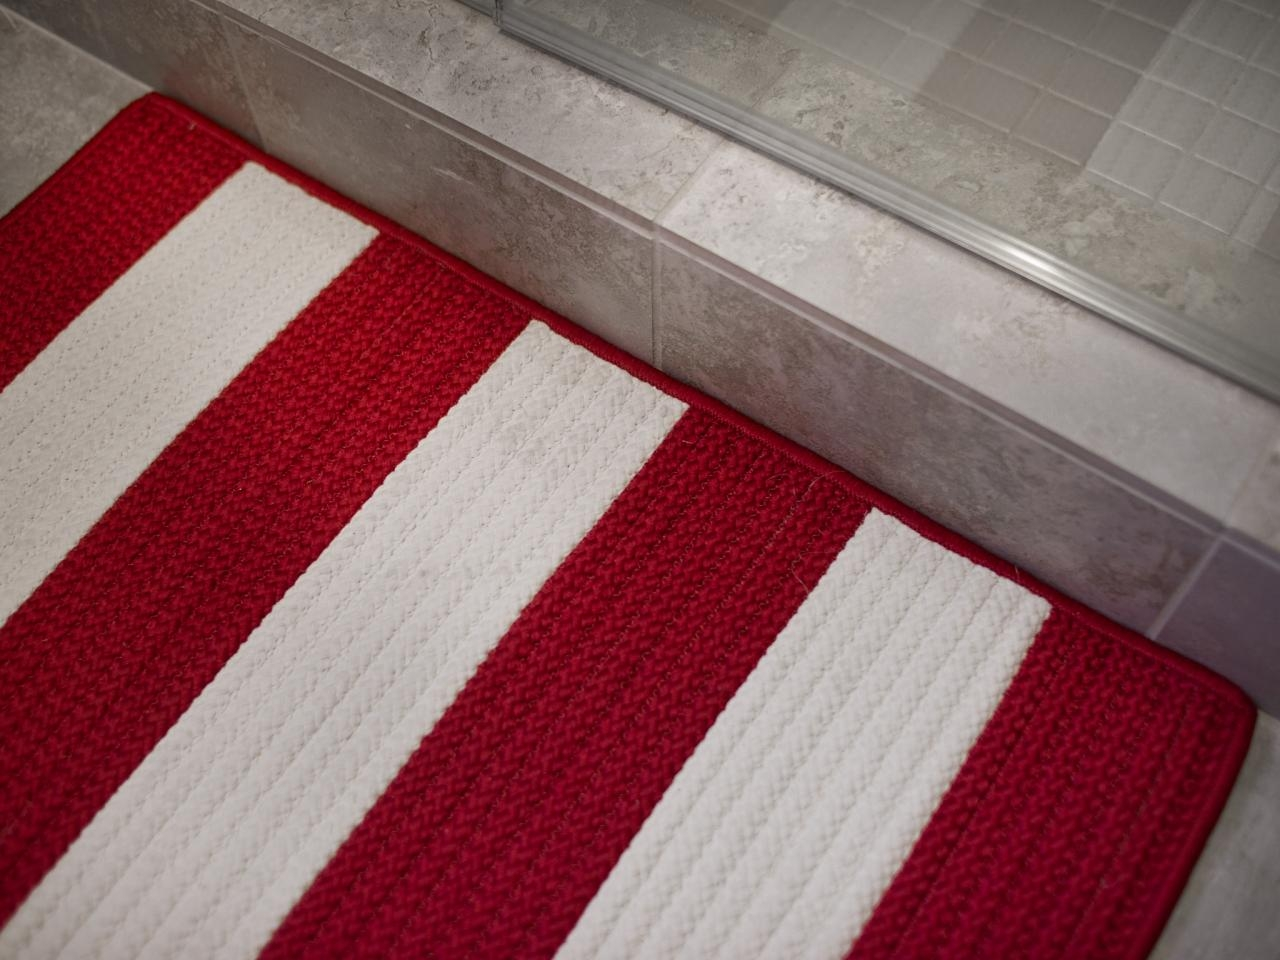 White Bathroom Rug That Turns Red